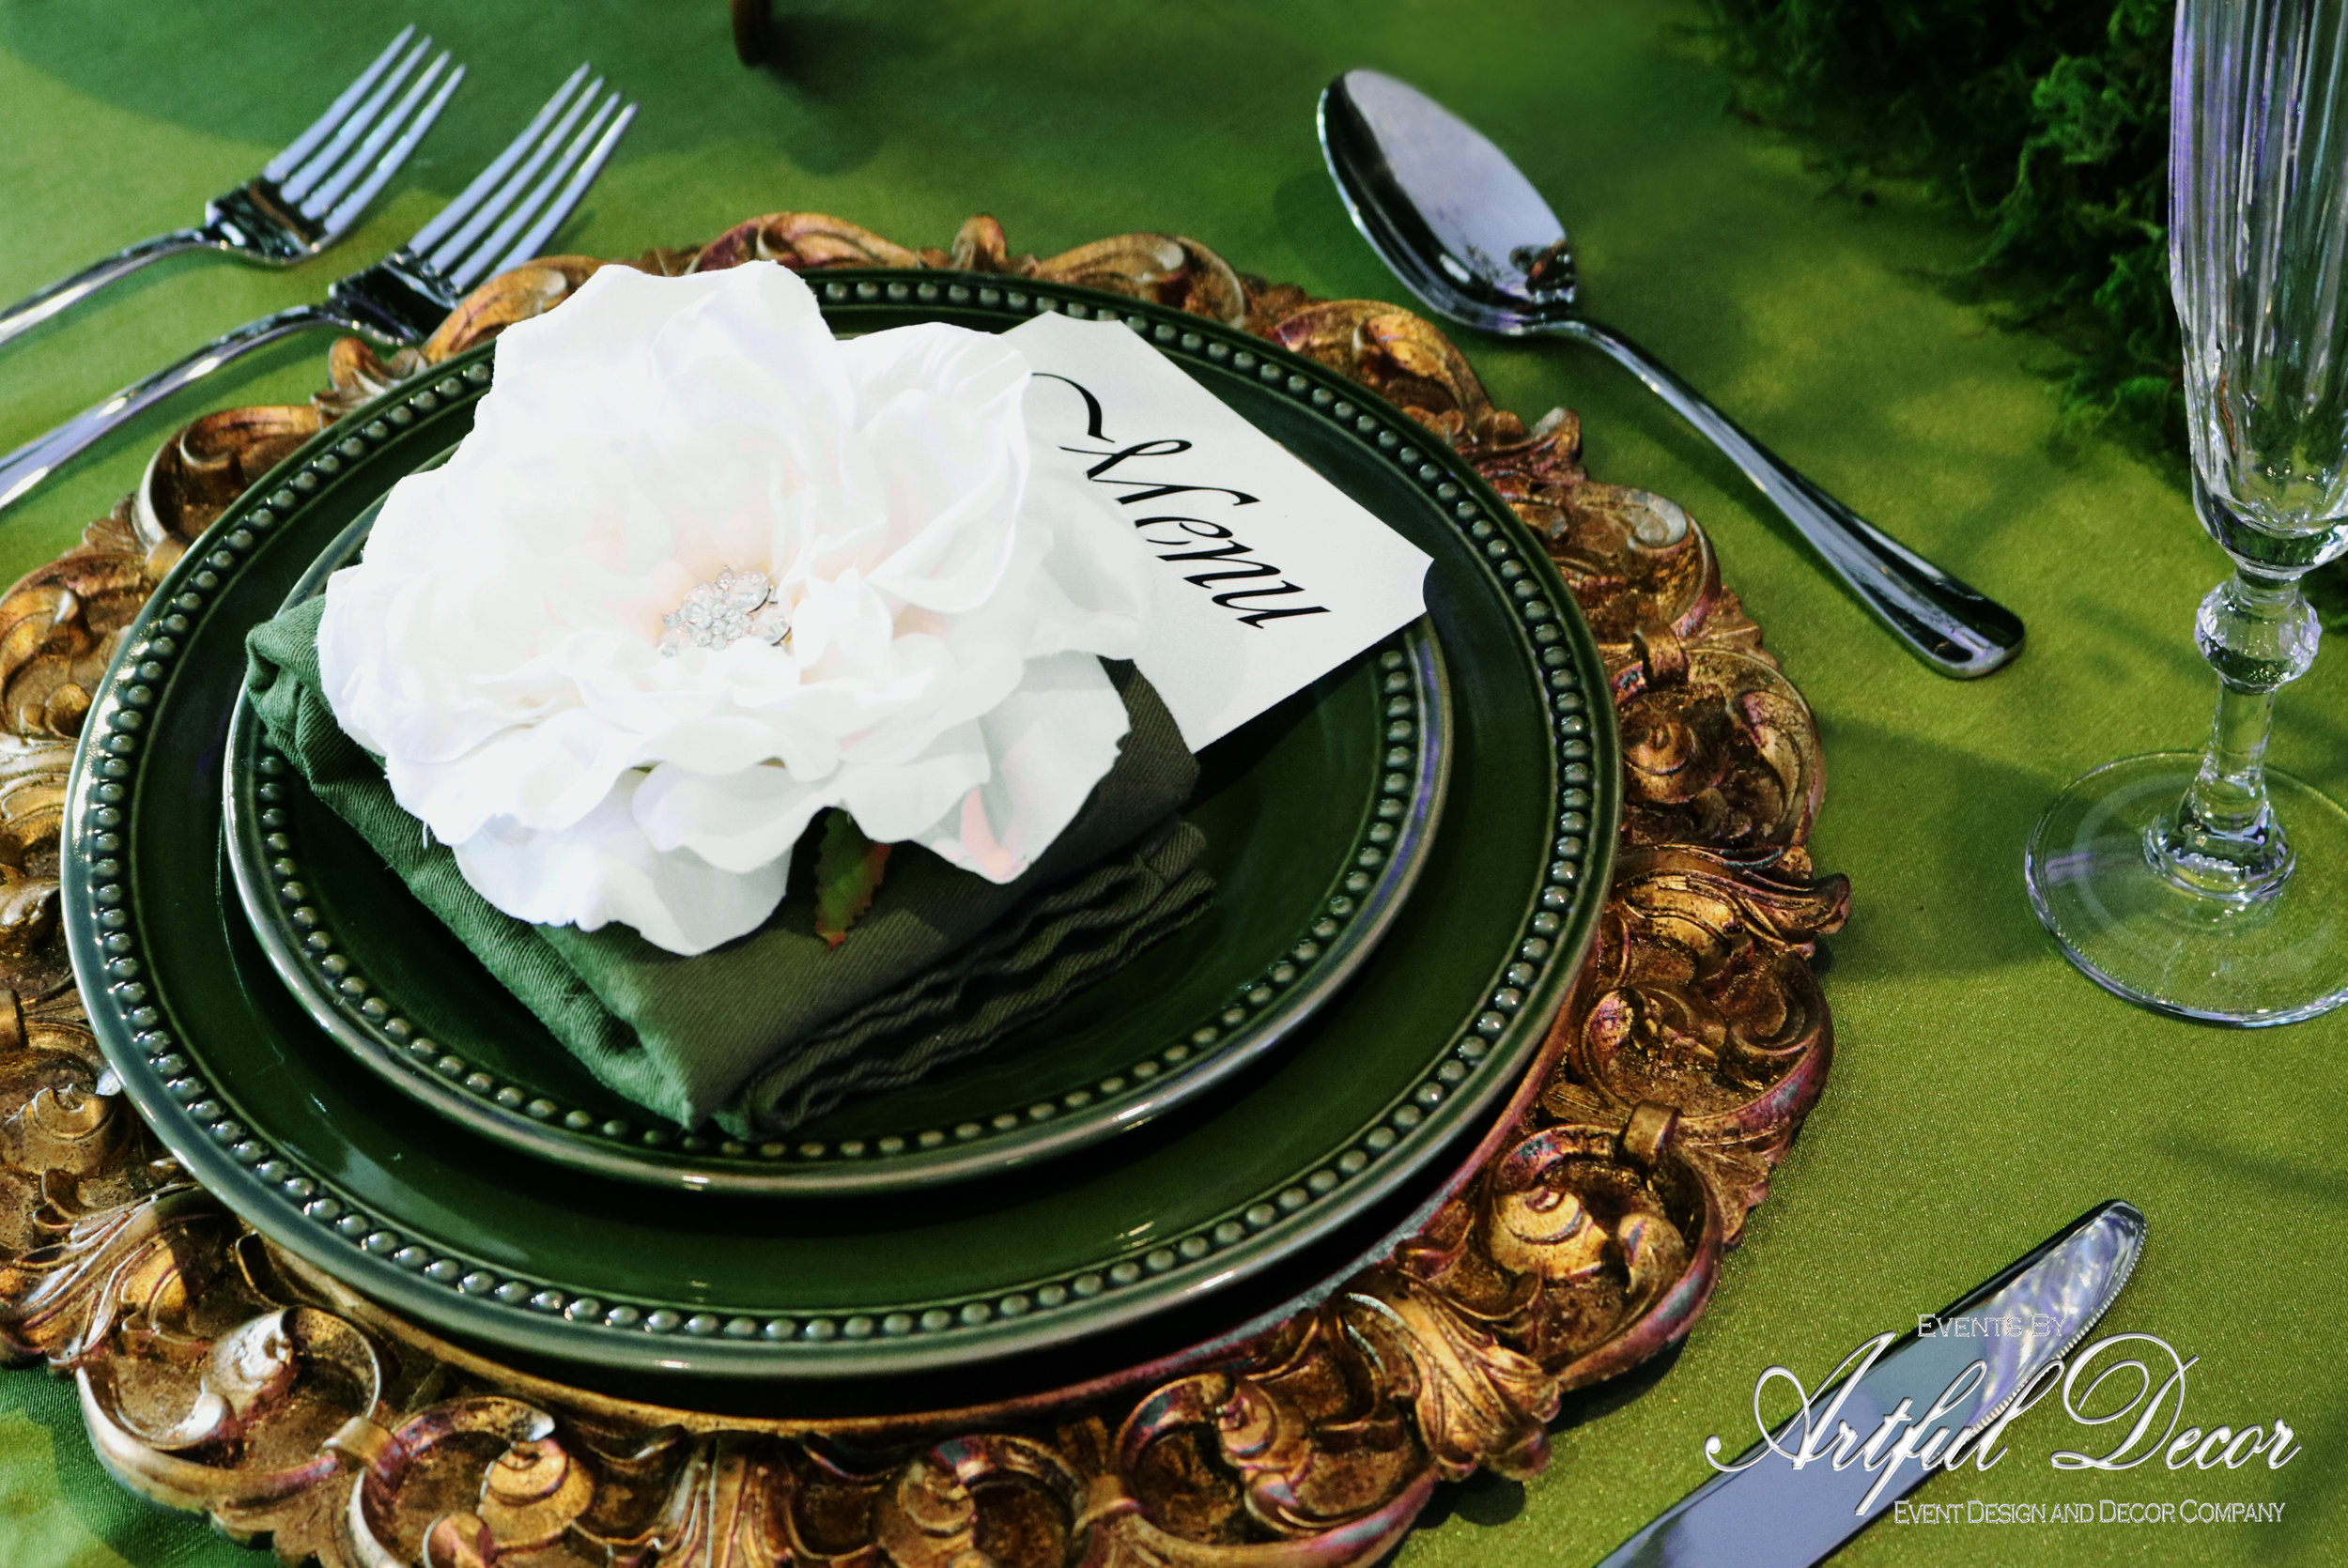 Spring Concept Table 2017 Place Setting Copyright.jpg